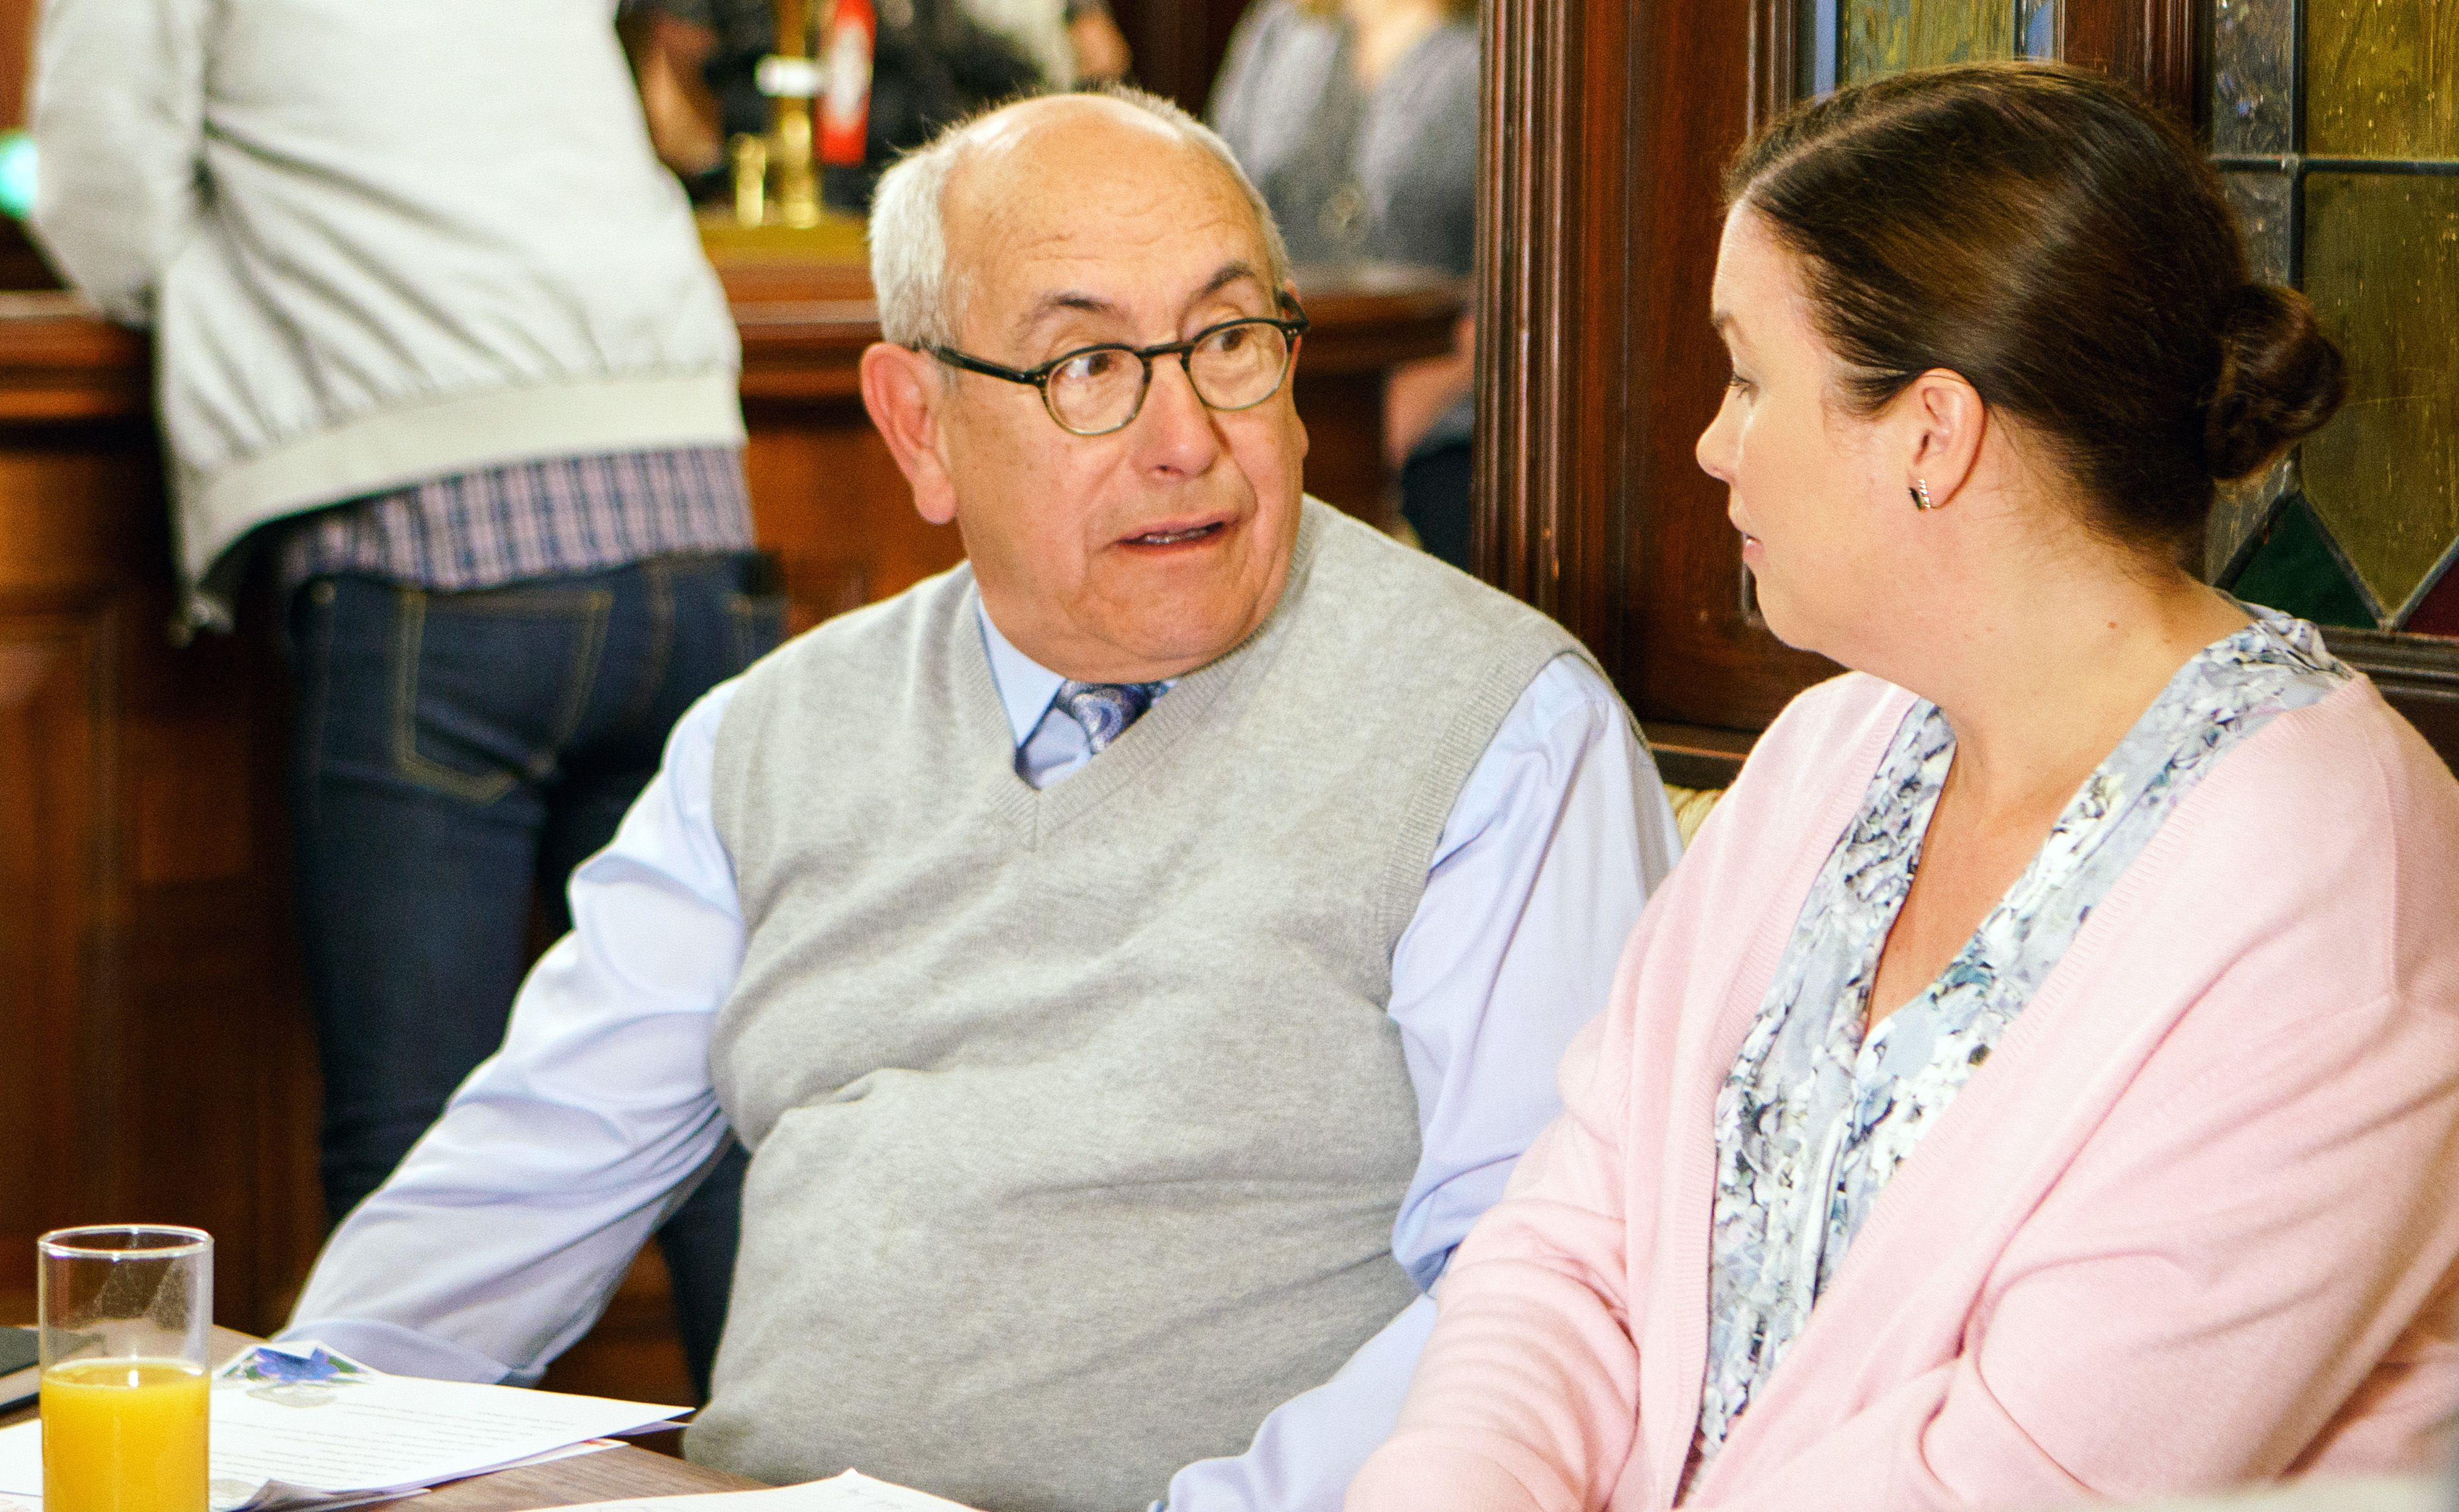 Malcolm Hebden plays Norris in Coronation Street